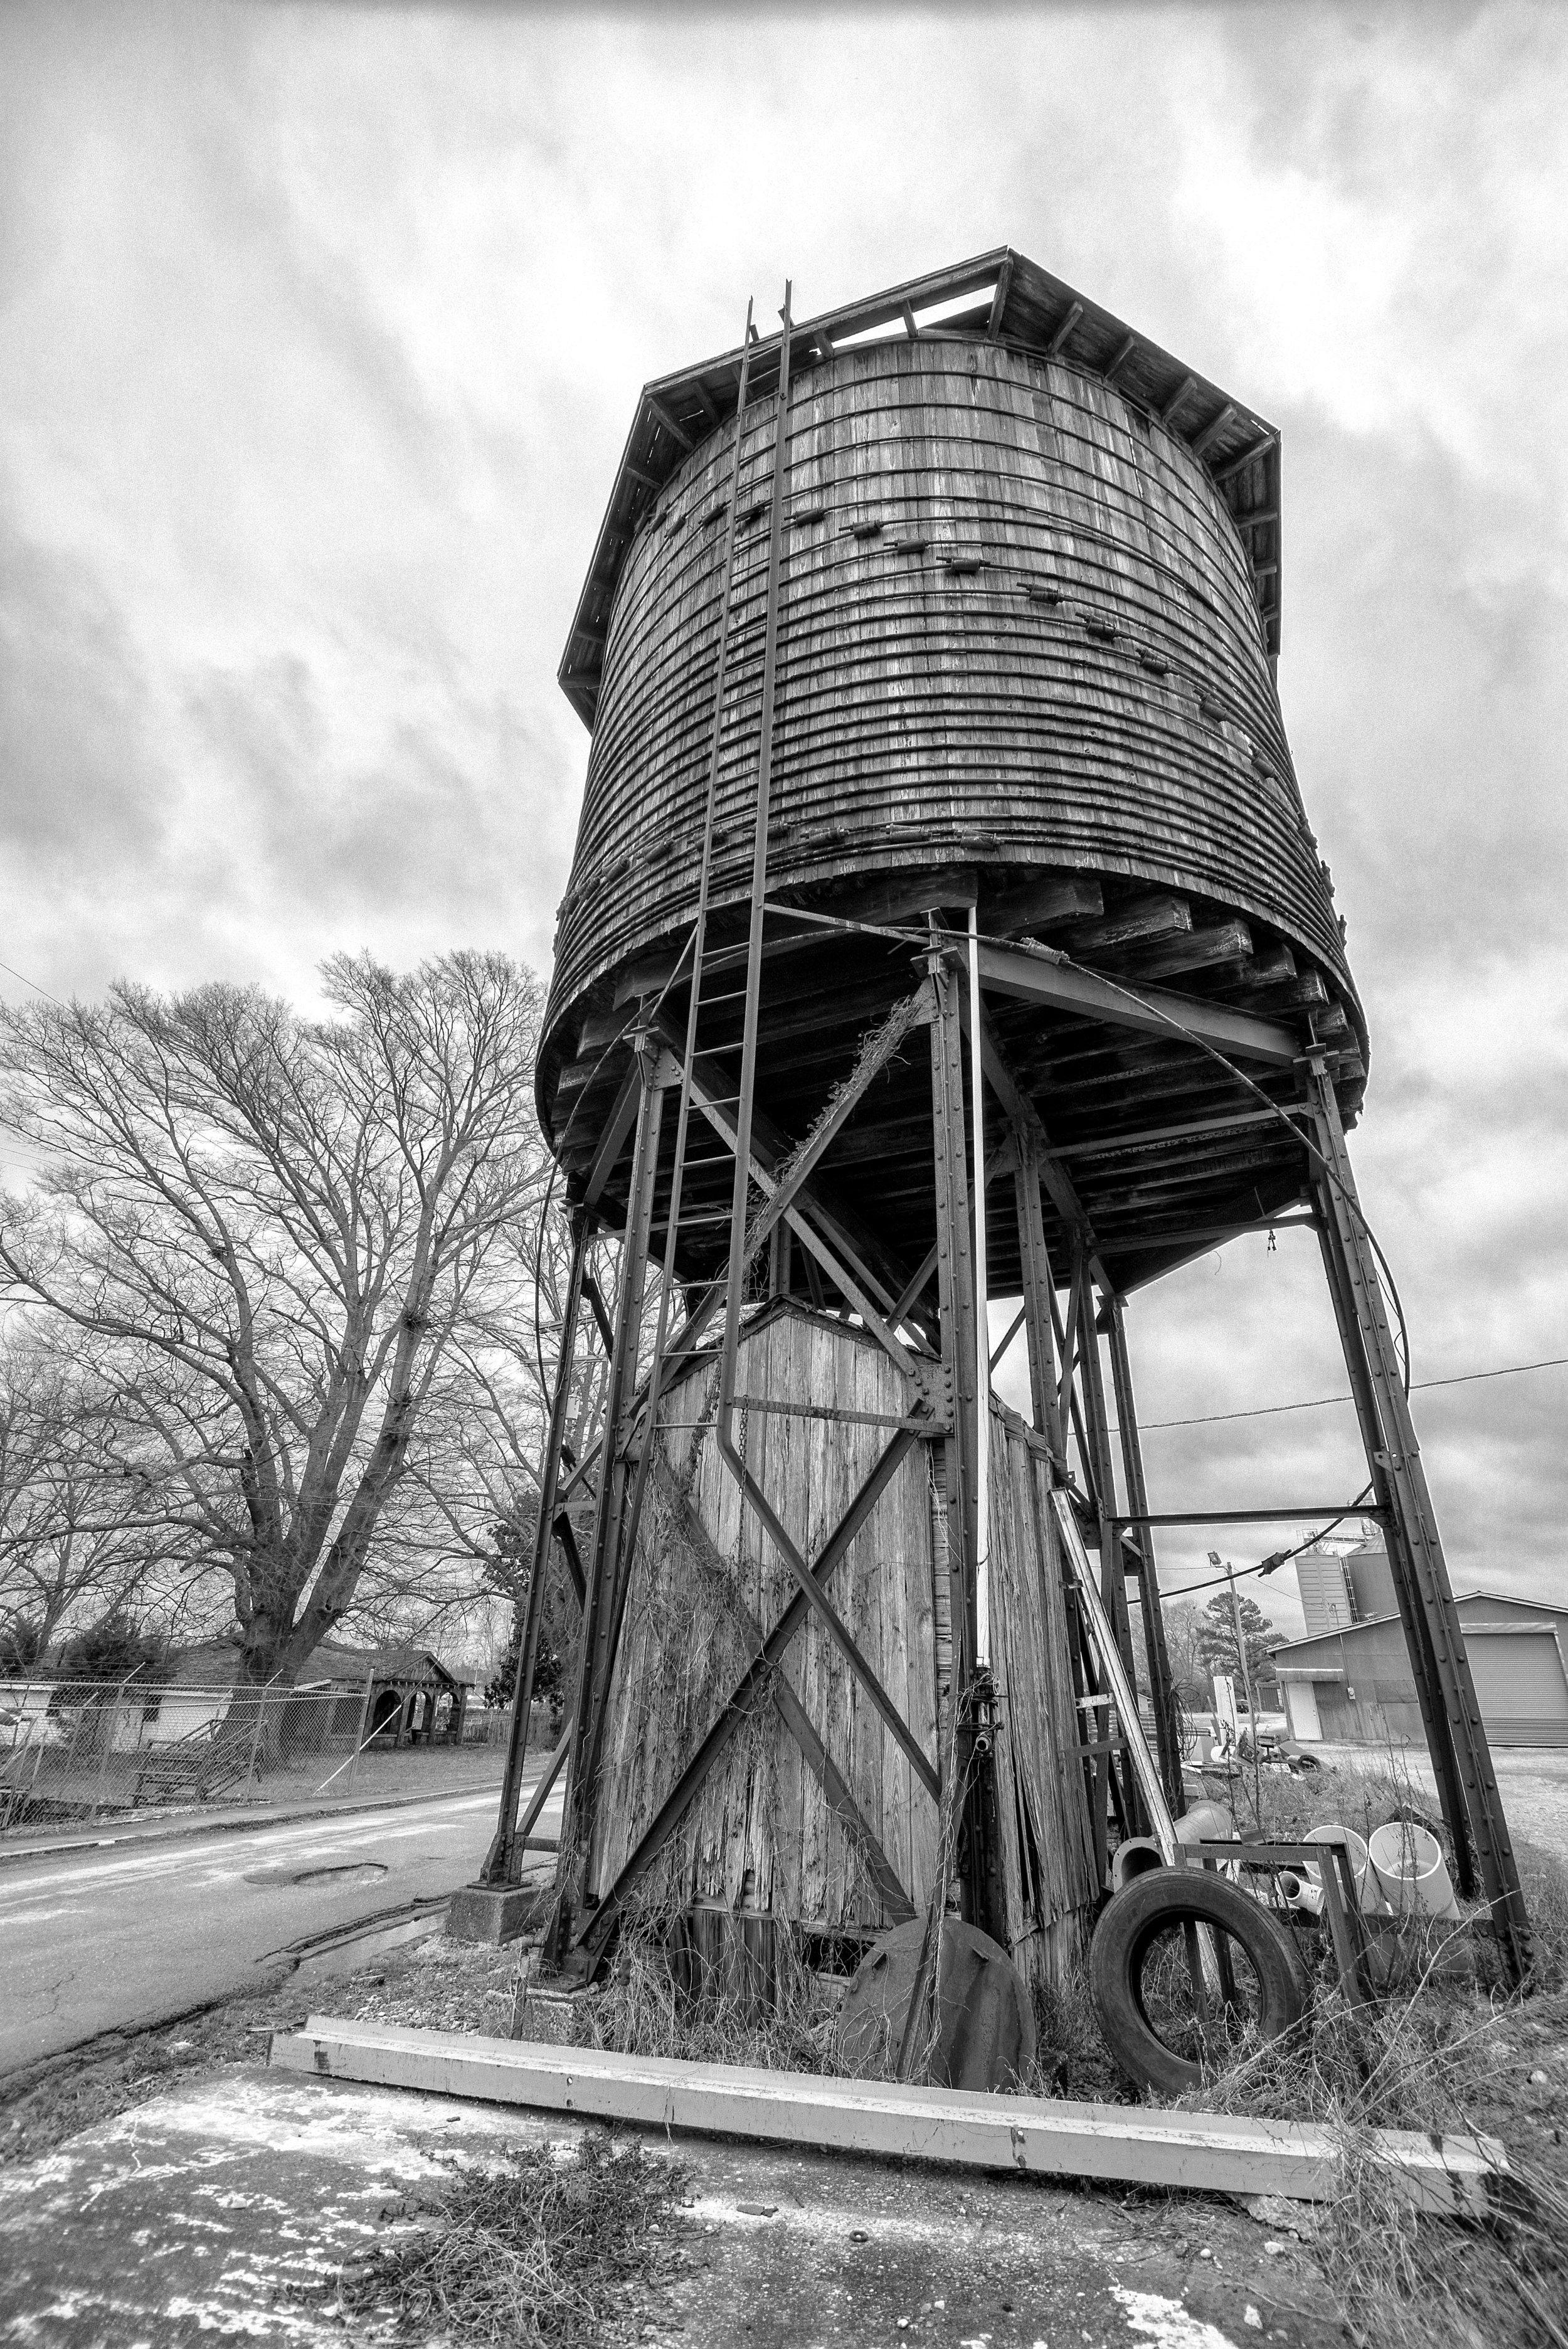 The water tower for the Illinois Central RR in Franklin County. Probably around 100 years old.